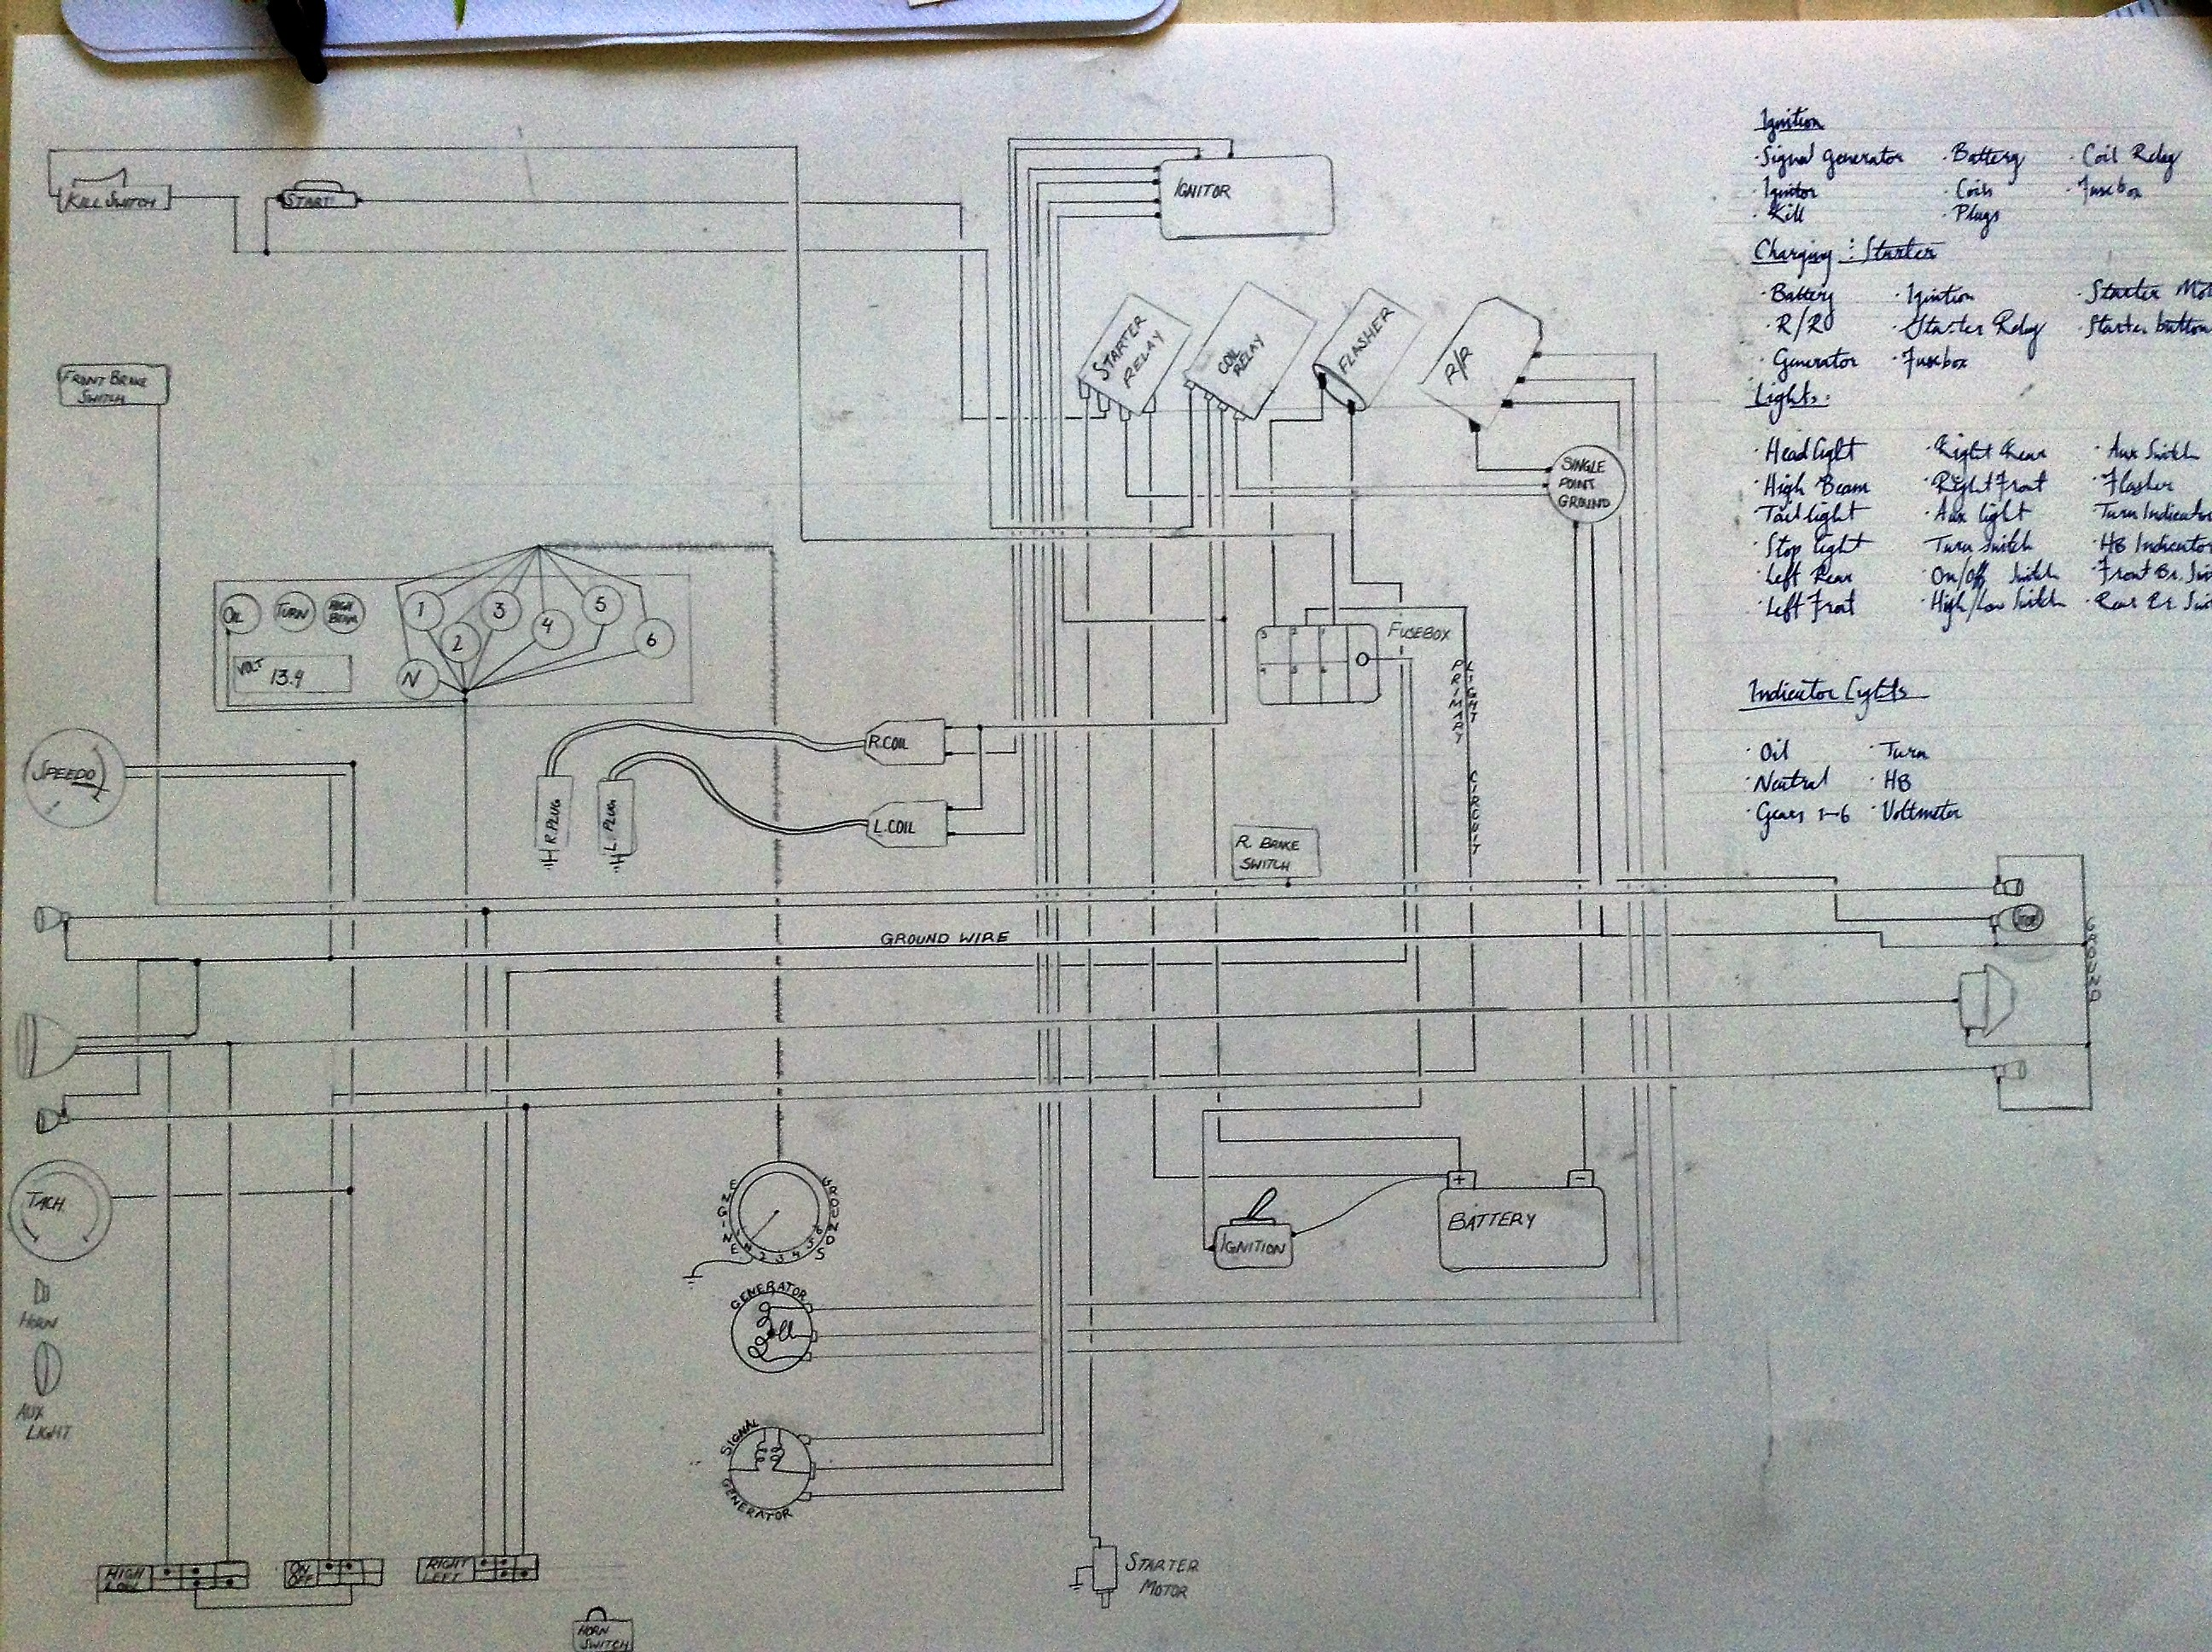 medium resolution of gs450 wiring diagram u2013 gs450liebelow is a tutorial on building a wiring harness for your